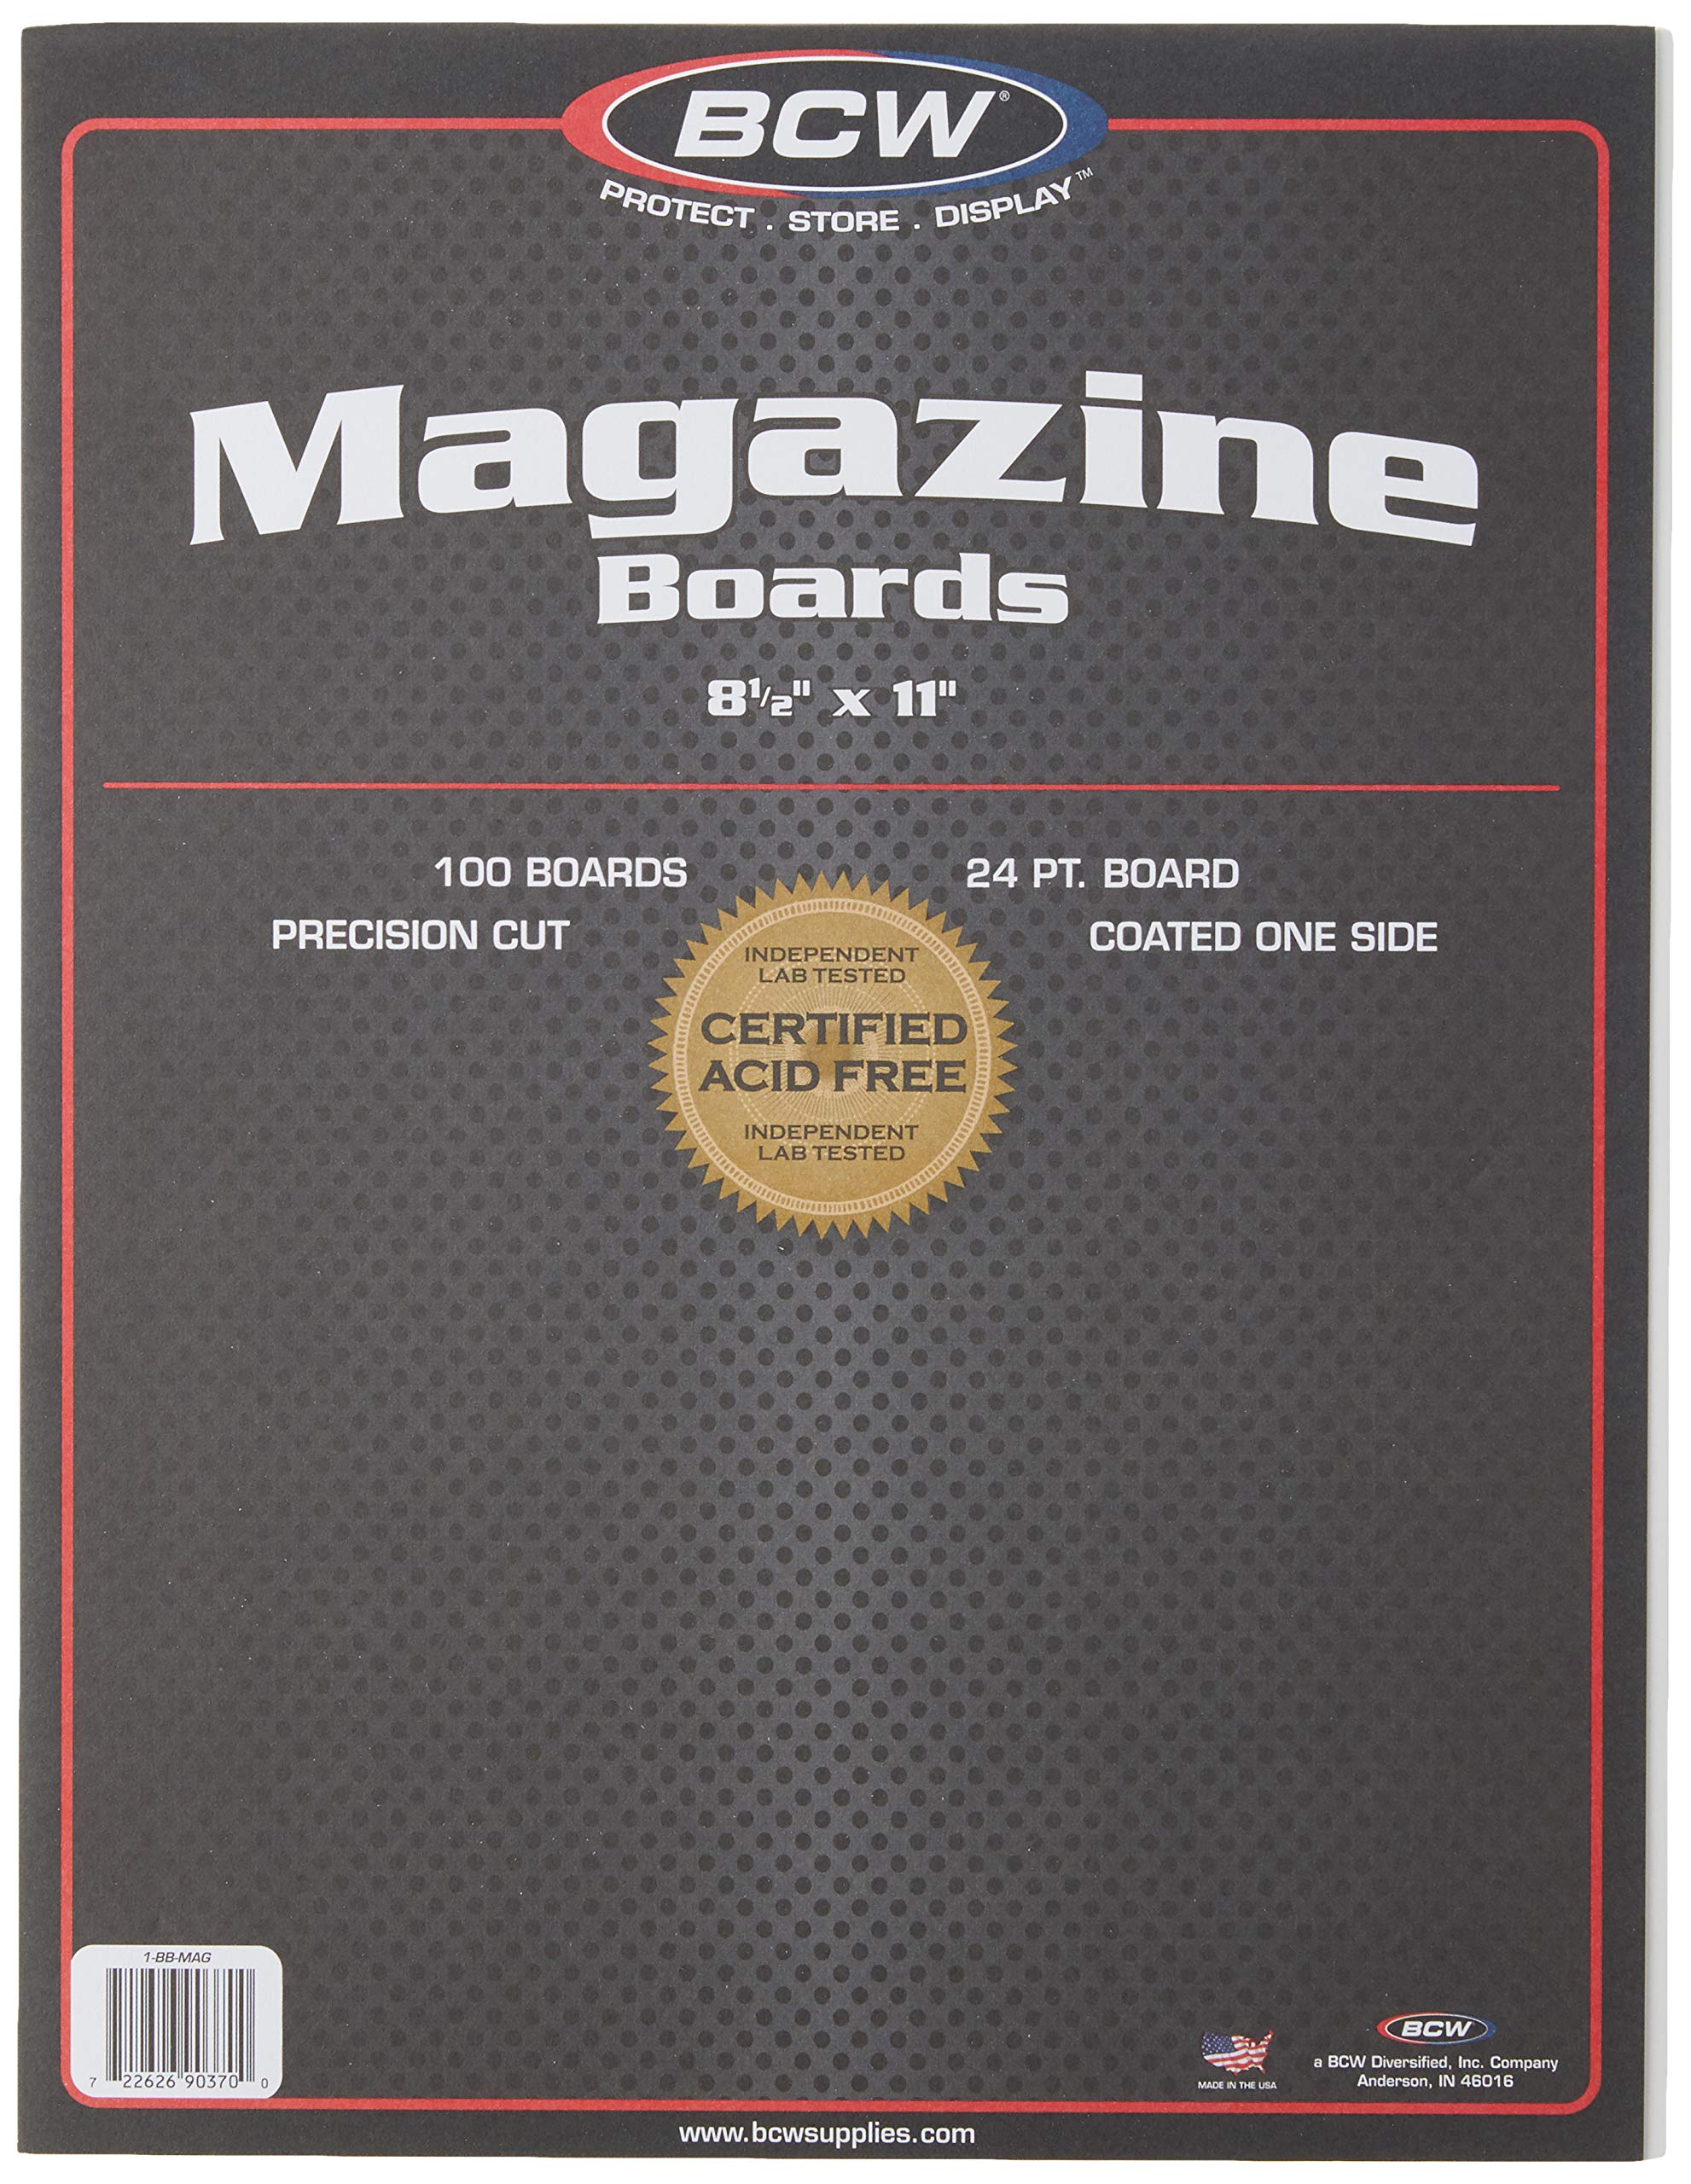 BCW-BBMAG - Magazine Size Backing Boards - White - (100 Boards), Size: 8.5 x 11 inches